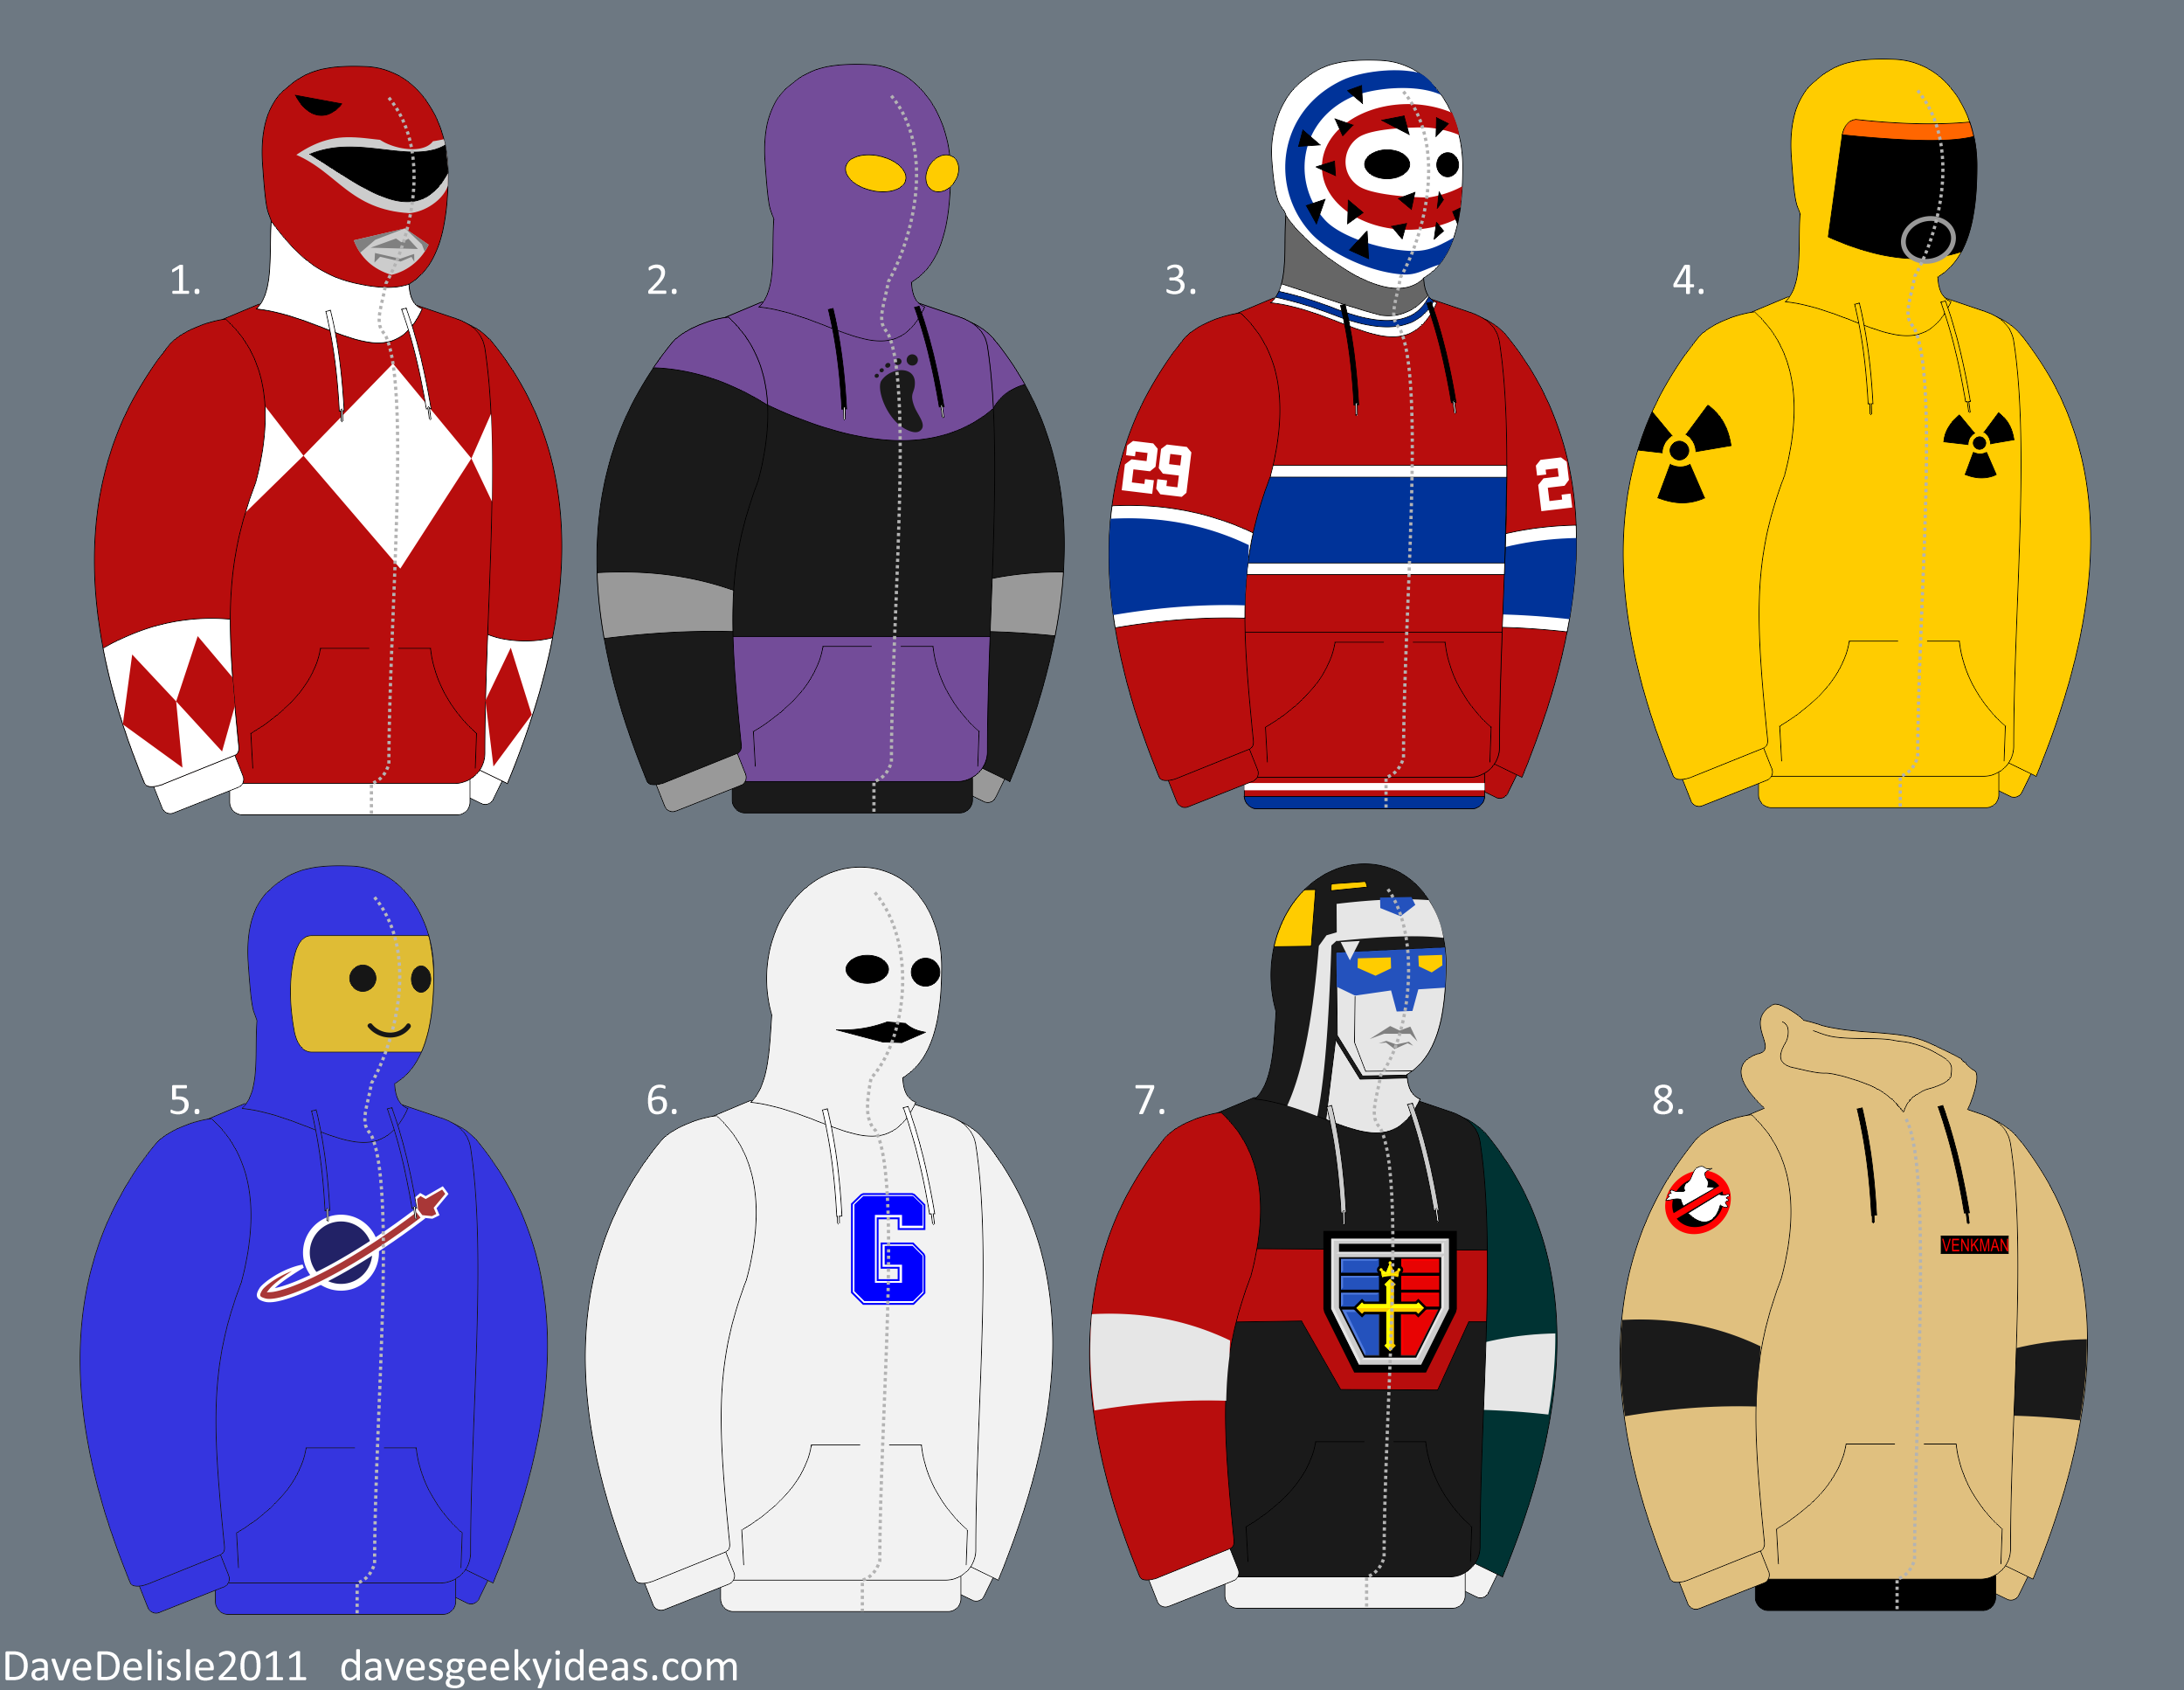 full zip hoodies ideas designs voltron power rangers ken dryden bttf community nbc - Hoodie Design Ideas